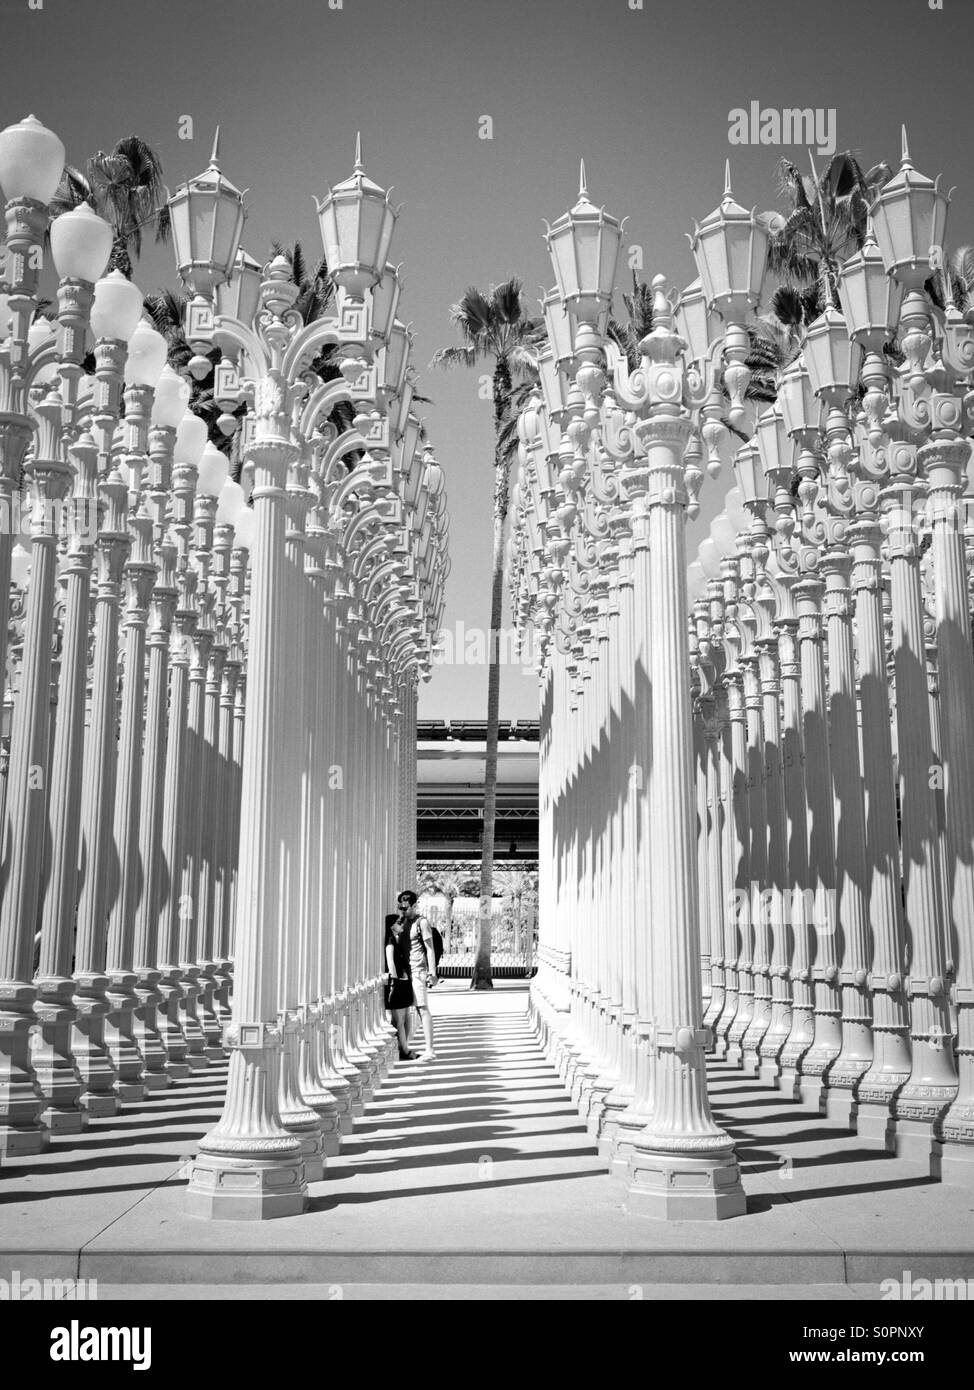 Couple In The LACMA Street Light Exhibit